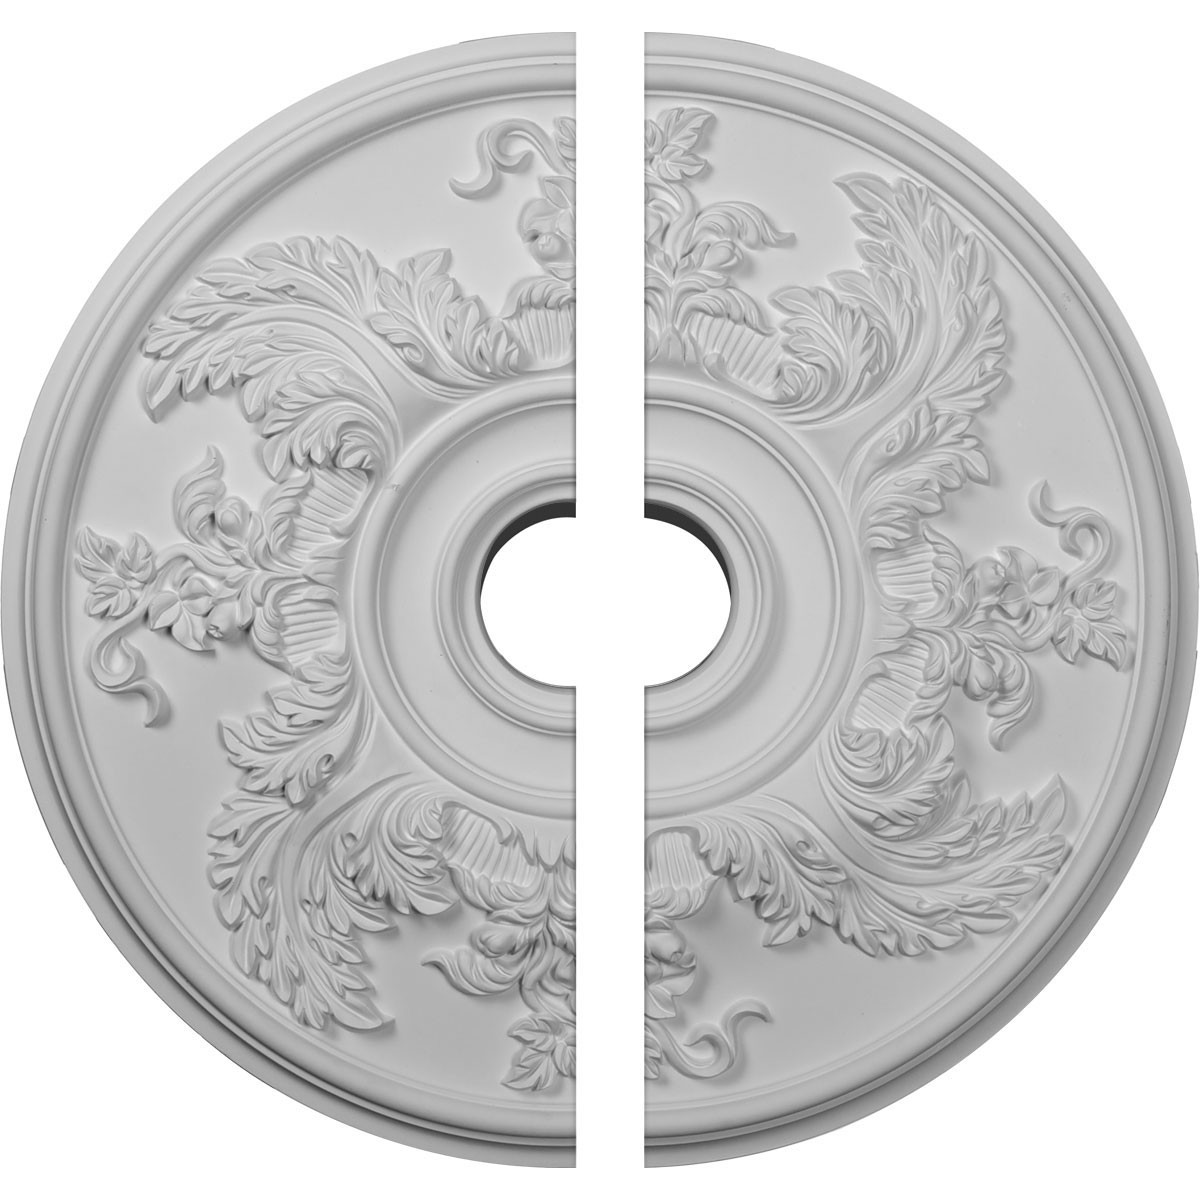 """EM-CM23AC2 - 23 5/8""""OD x 4 5/8""""ID x 1 7/8""""P Acanthus Twist Ceiling Medallion, Two Piece (Fits Canopies up to 8 3/8"""")"""